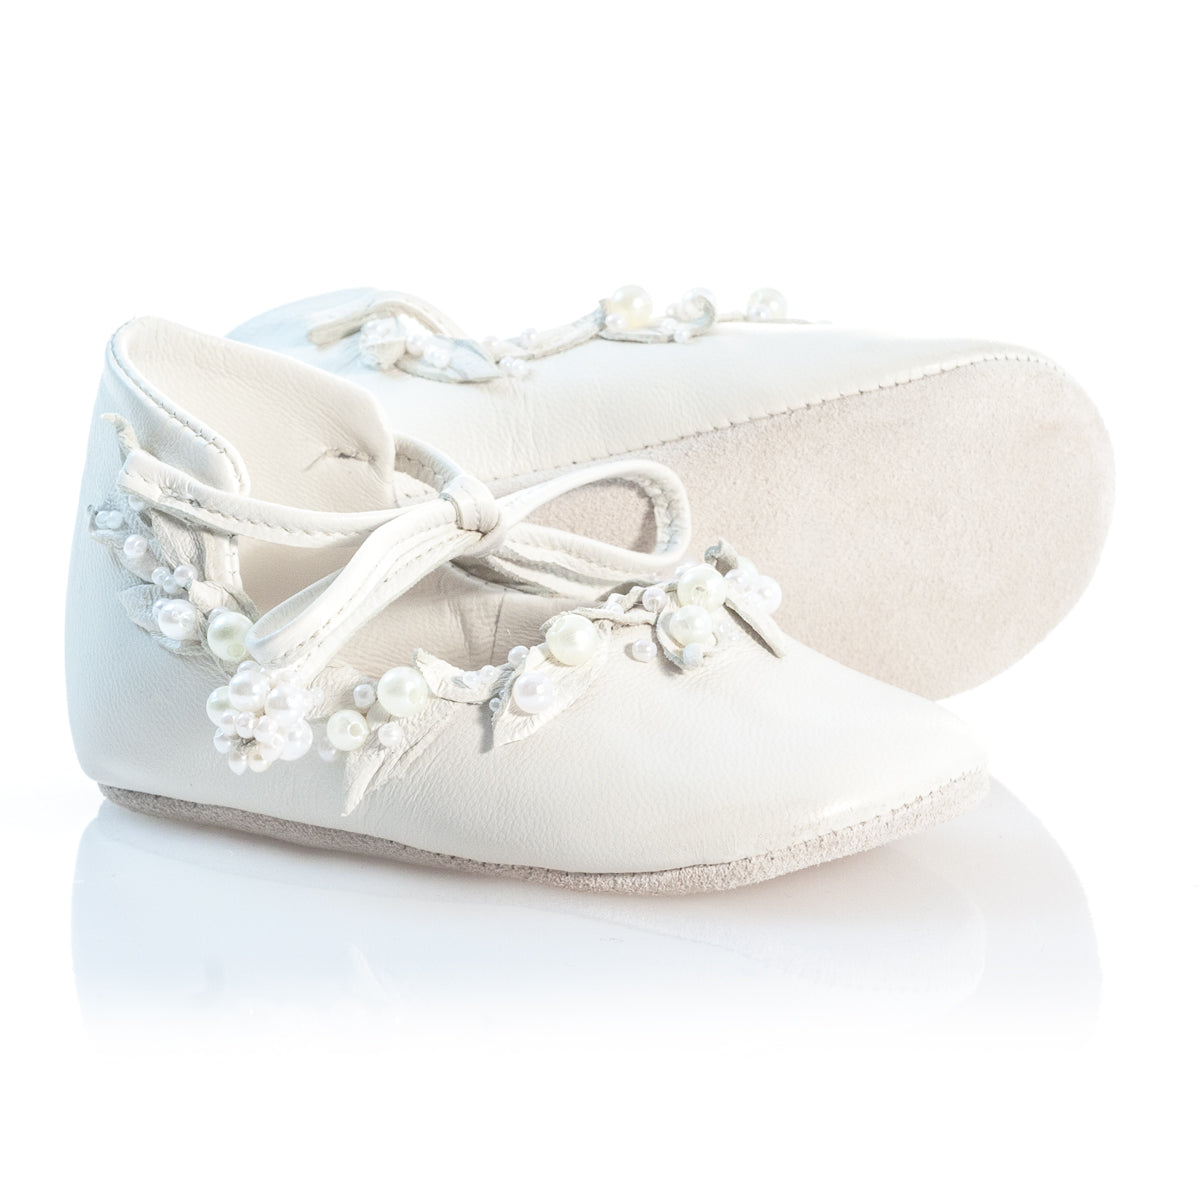 VIBYS WHITE FOREST handmade white leather baby shoes with pearls and leather leaves